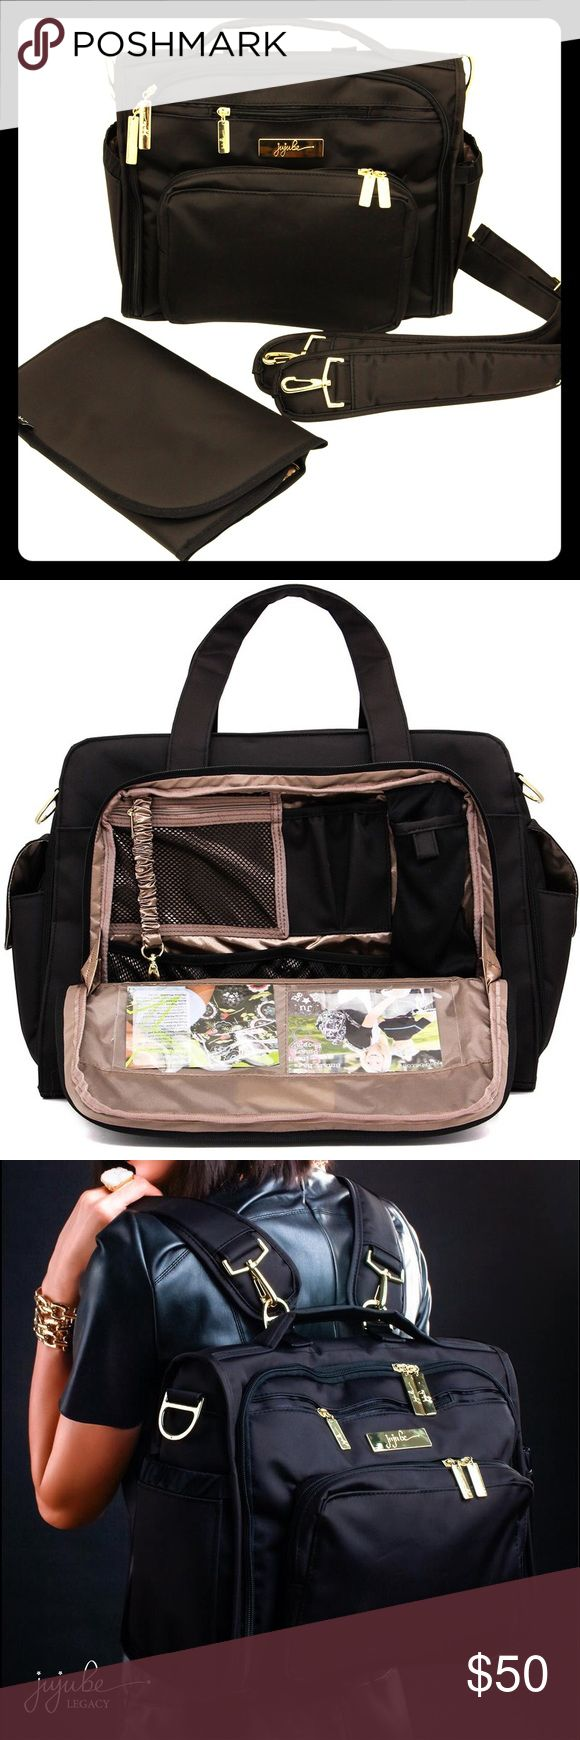 "Jujube diaper baby bag ""the monarch"" I bought this diaper bag from Nordstrom less than a year ago and it's amazing -- lots of pockets inside and out, and a perfectly sized outside ""mom's pocket"" that fits wallet, keys, sunglasses, lip gloss, pens, etc. Comes with a changing pad. Best feature is that it can be worn as a shoulder bag or backpack which is perfect for travel. If you're not familiar with this bag, check out more details online or the reviews on YouTube! This bag is used but still…"